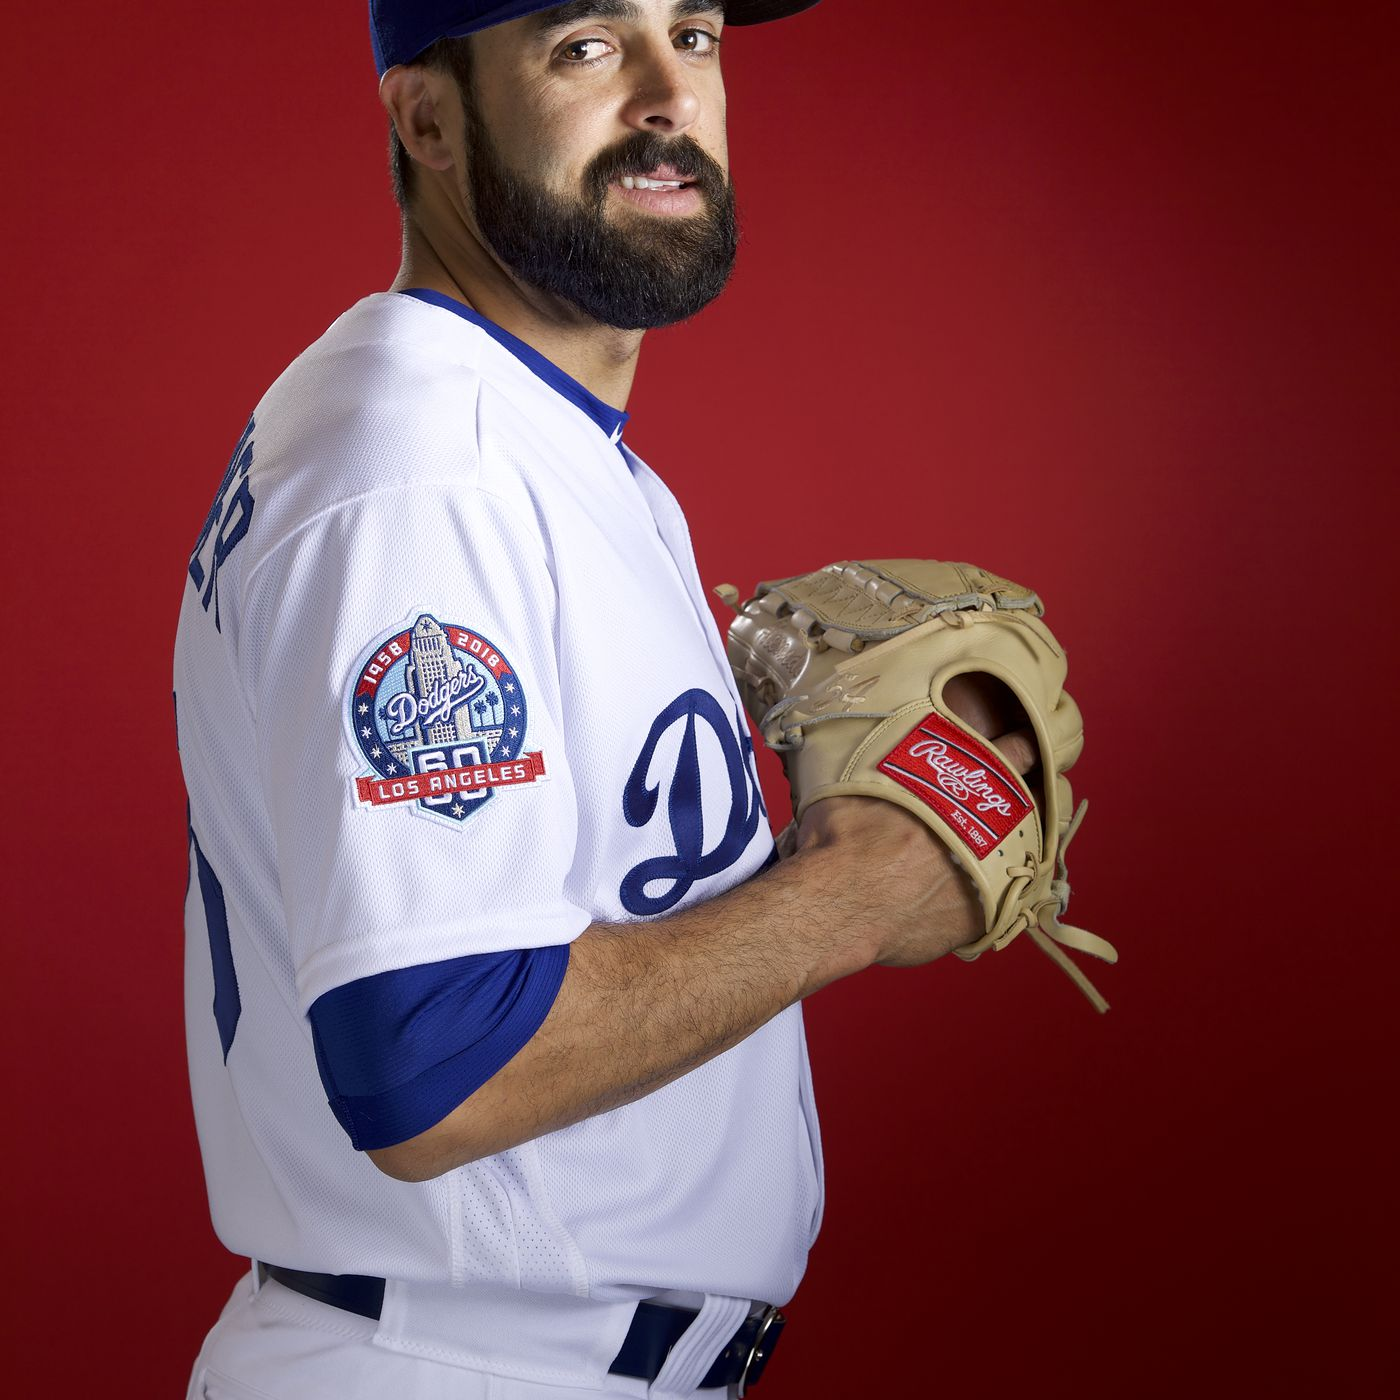 spring training: new acquisition scott alexander adds to dodgers